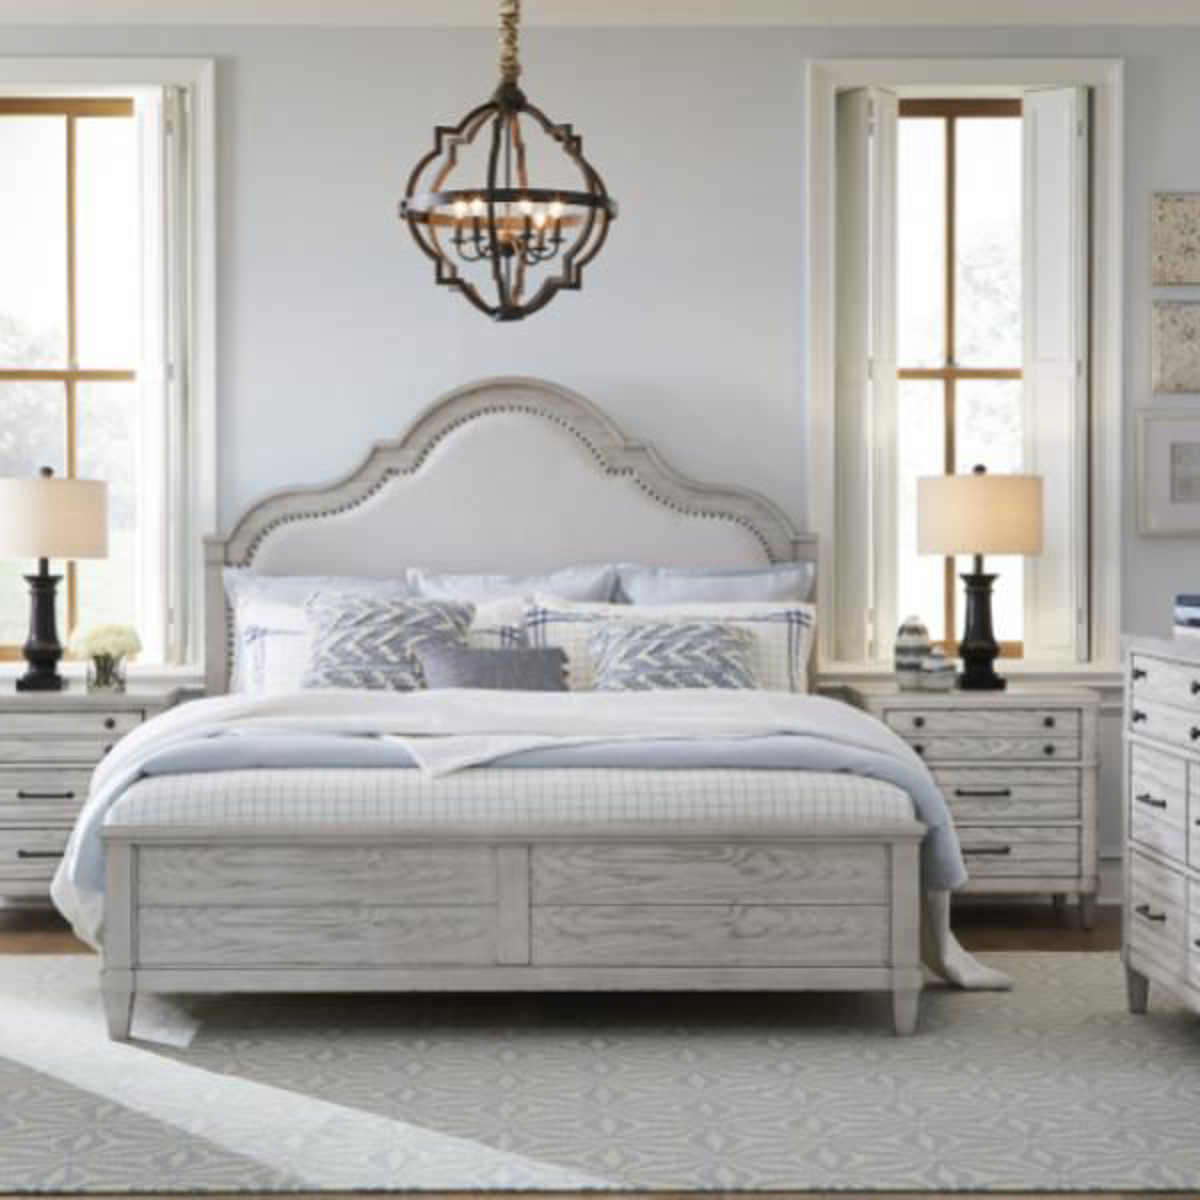 Picture of Bellhaven Upholstered Panel Bed